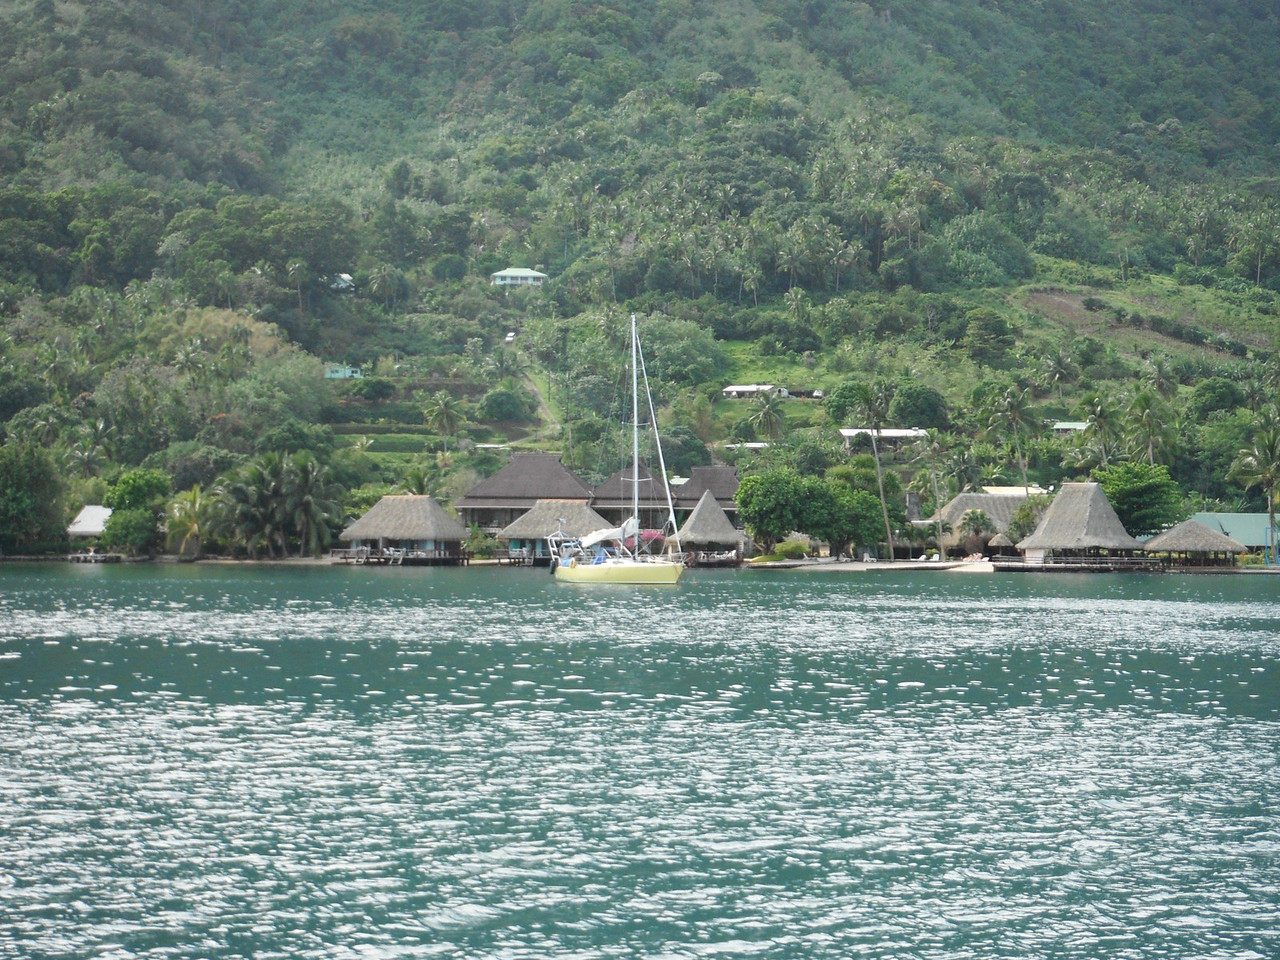 Our 2 bungalows, right behind the yellow sailboat.